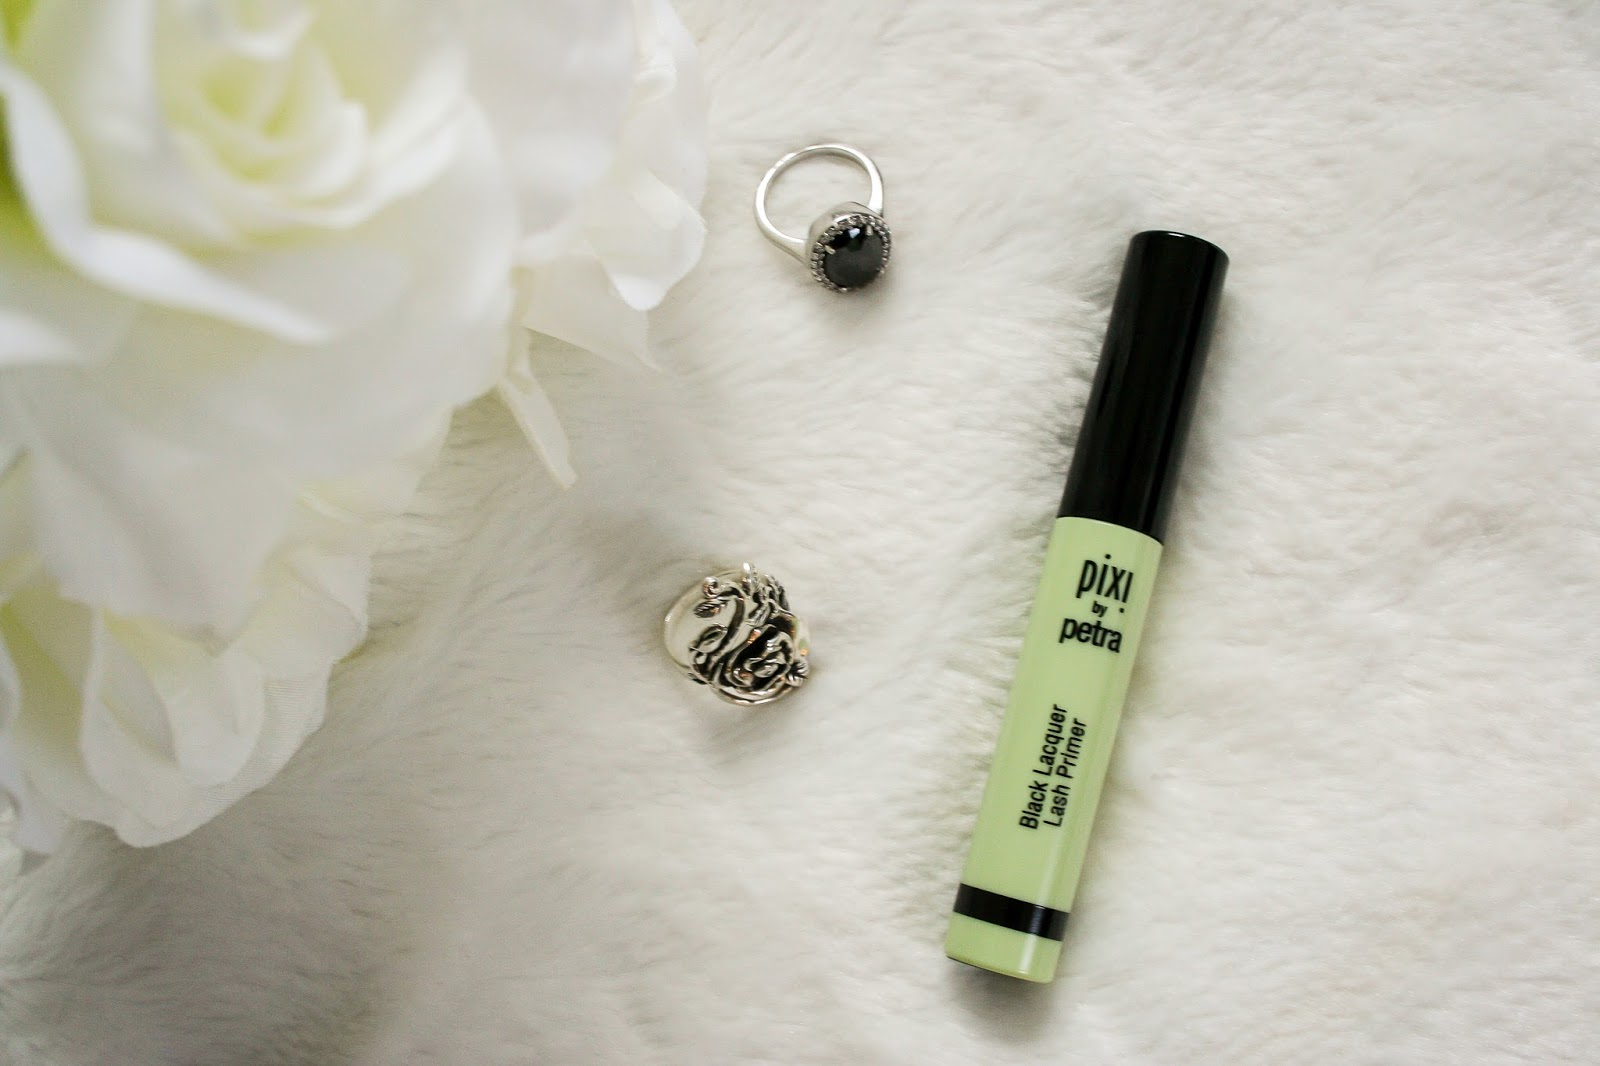 Image contains tube of lash primer, on white background, with roses and 2 rings